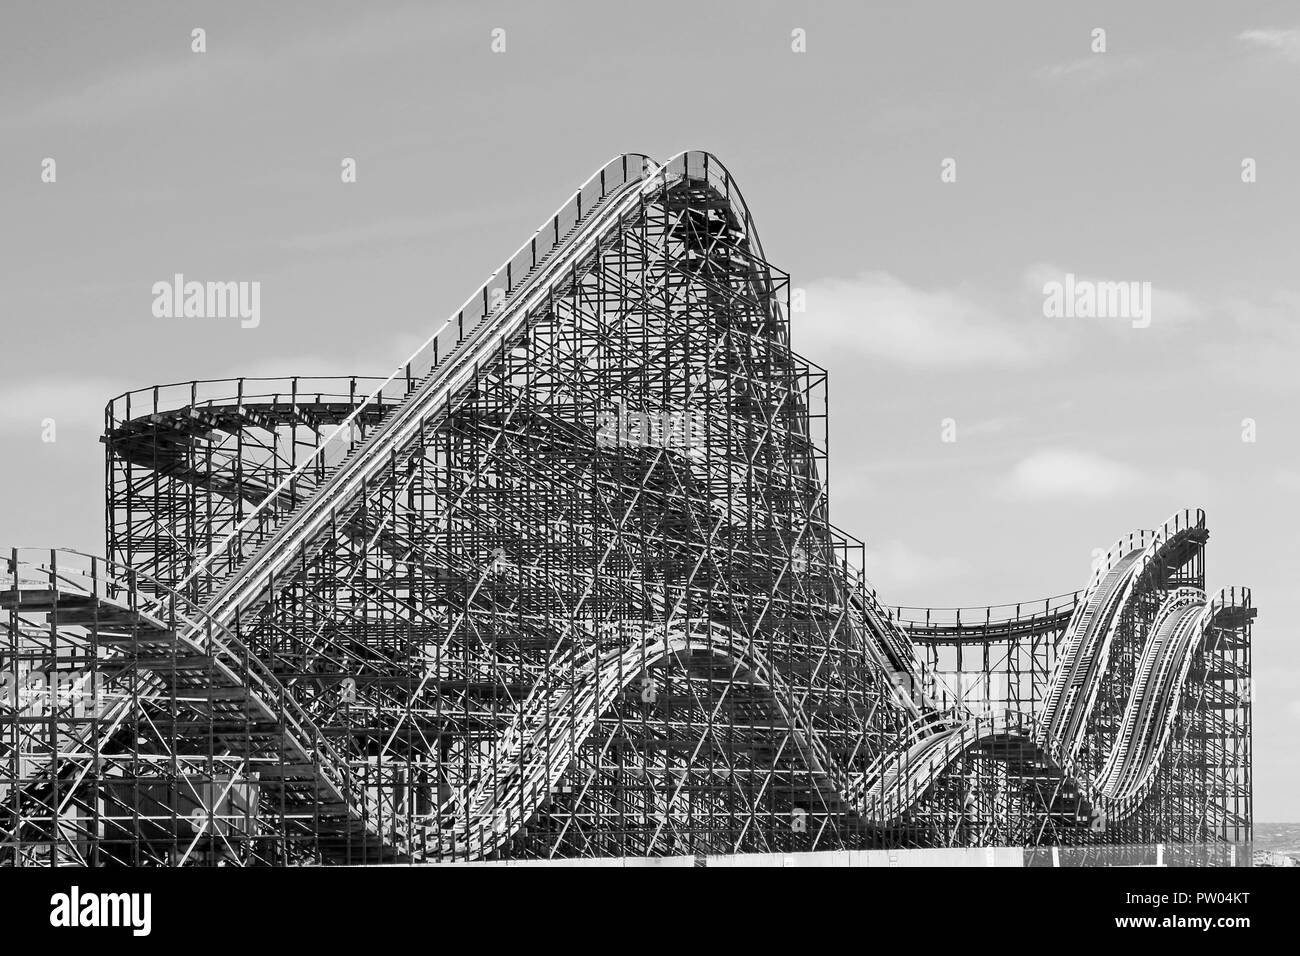 The Great White roller coaster in black and white, Wildwood NJ, USA - Stock Image